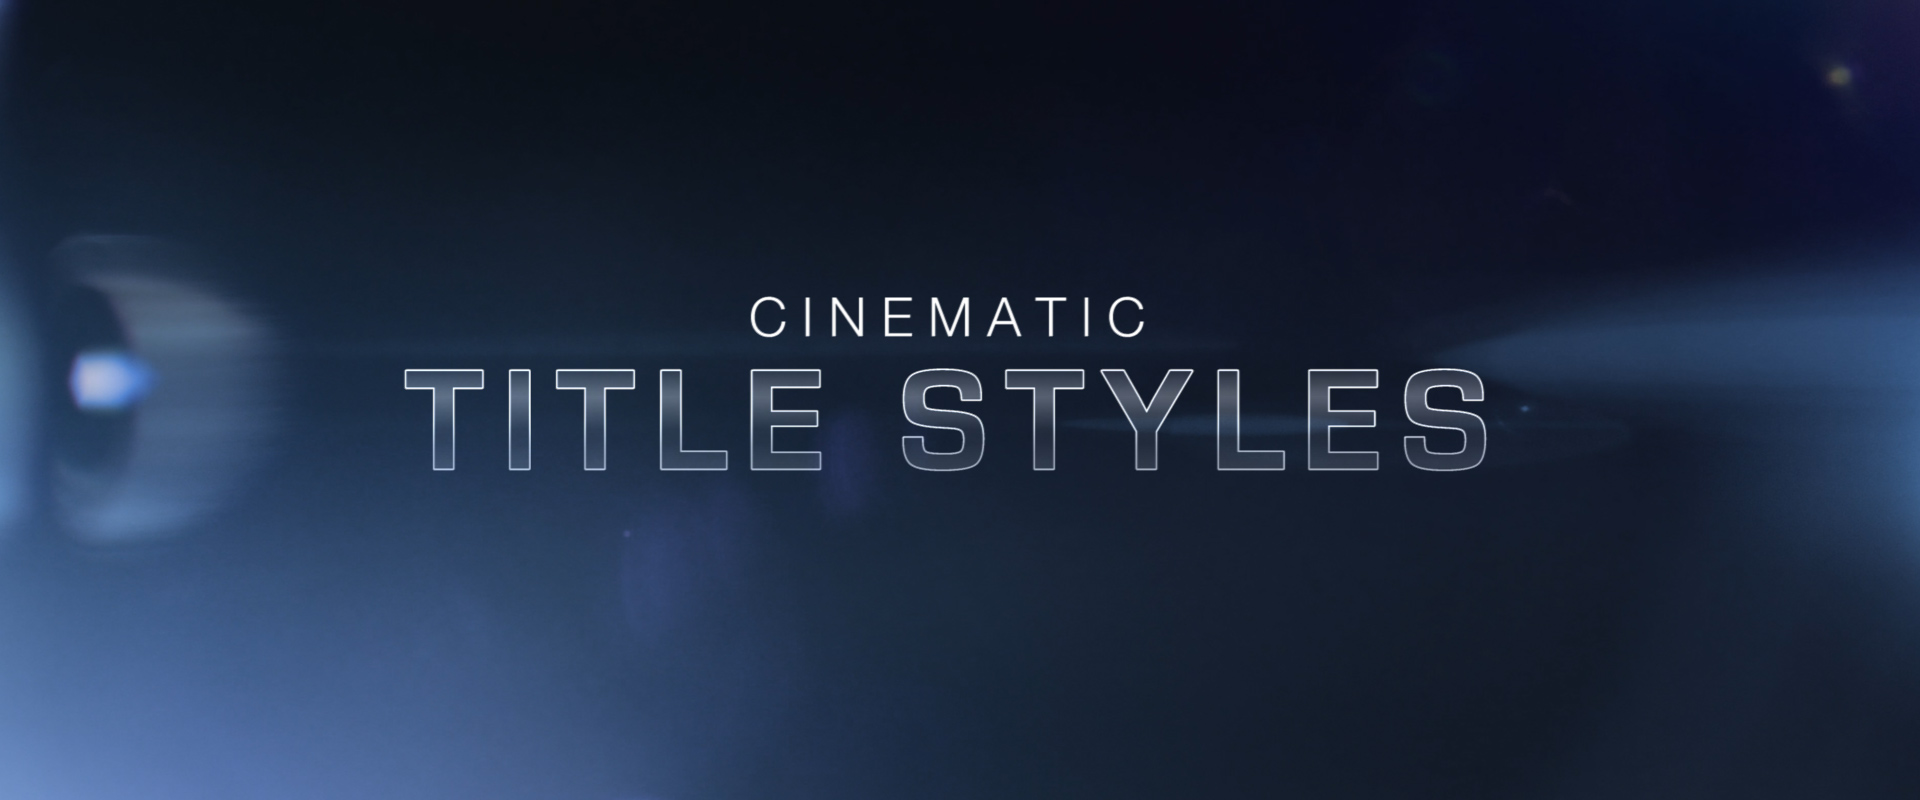 Free Cinematic Title Style Library for Premiere Pro - Cinematic Titles